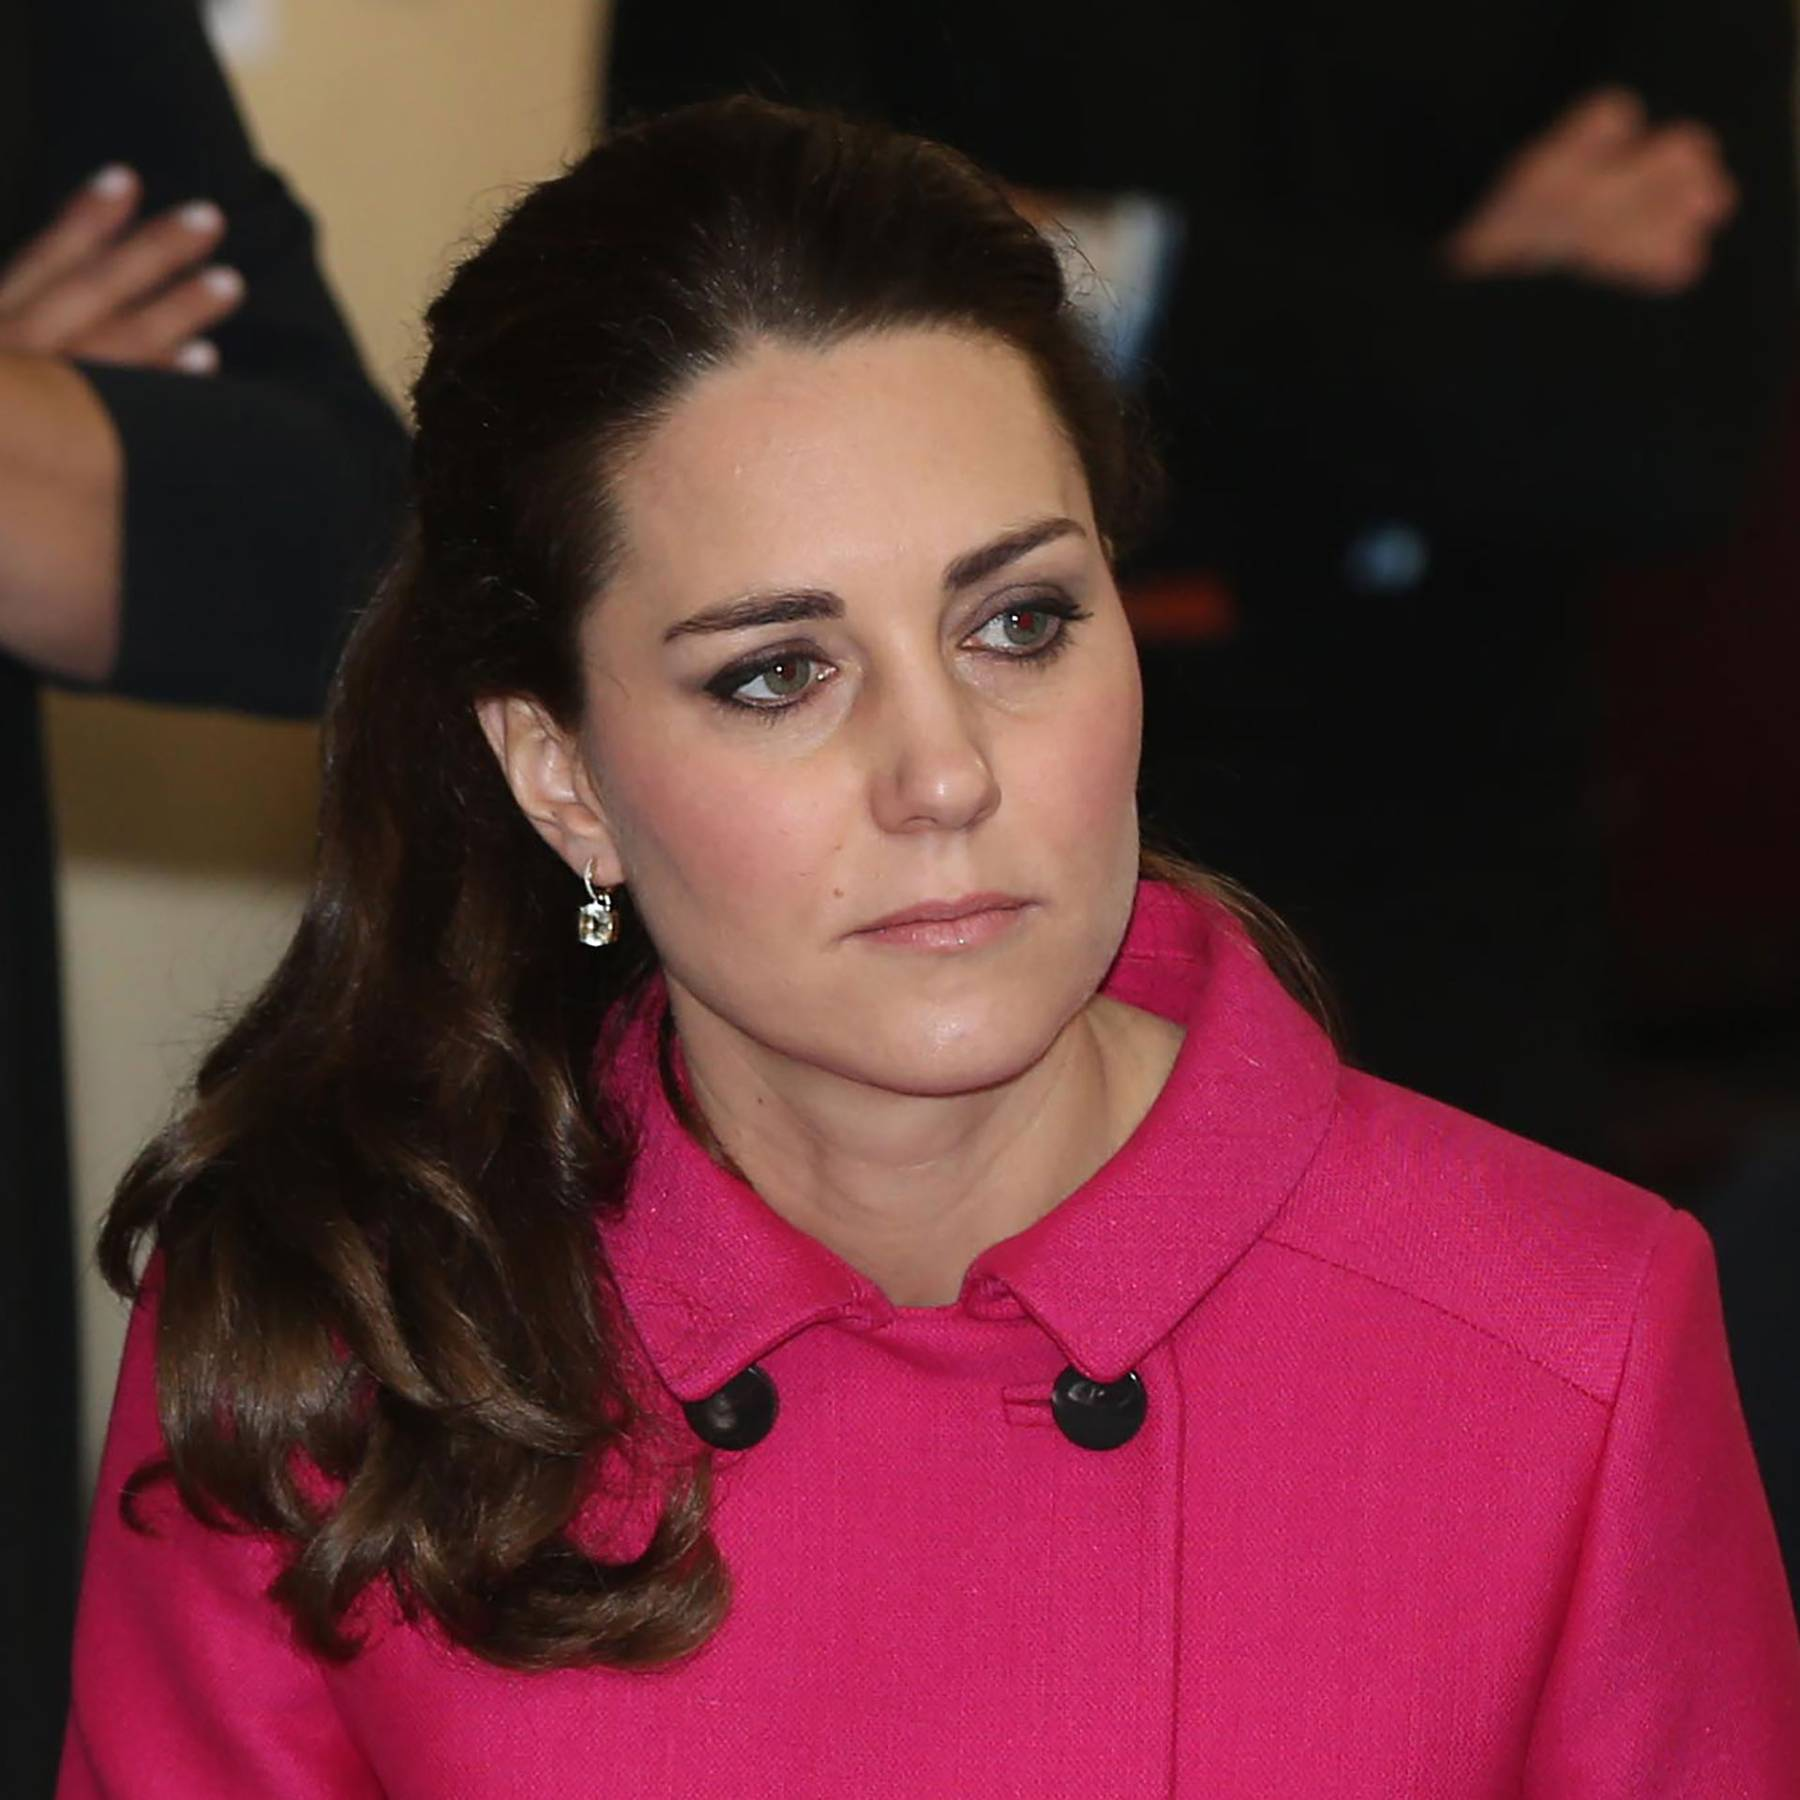 The Duchess of Cambridge describes feeling isolated in Anglesey